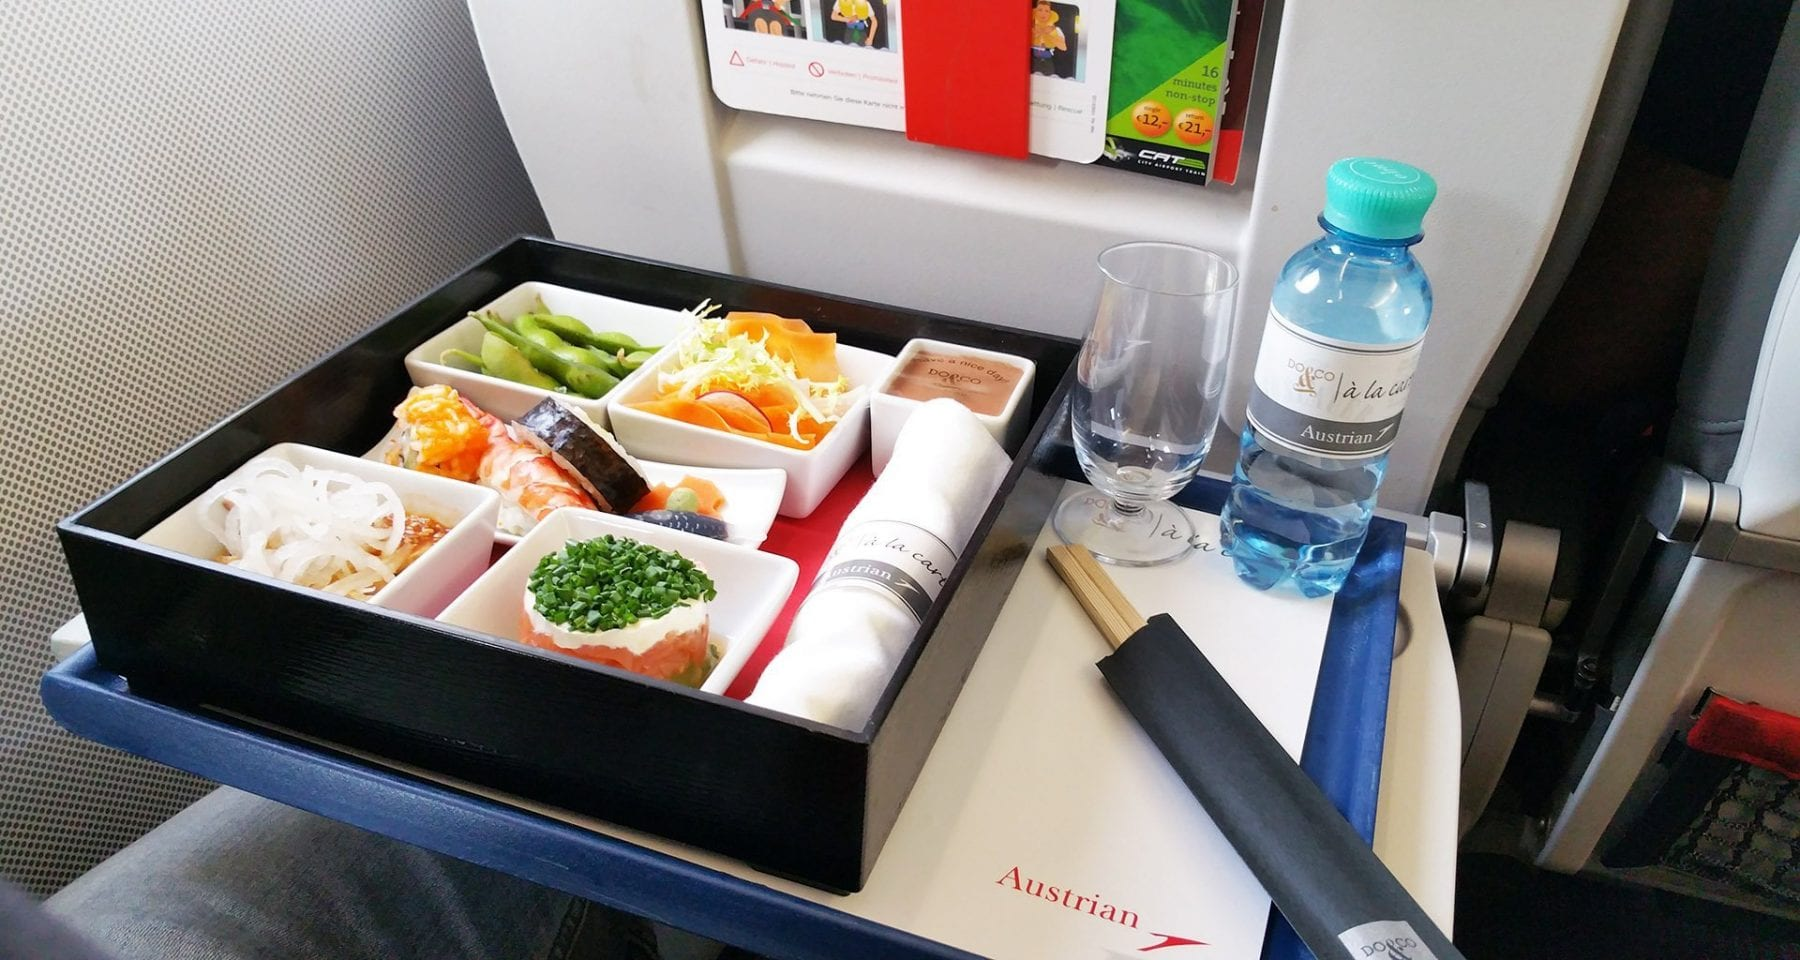 Austrian airlines japanese meal economy class upgrade meal by Do&Co